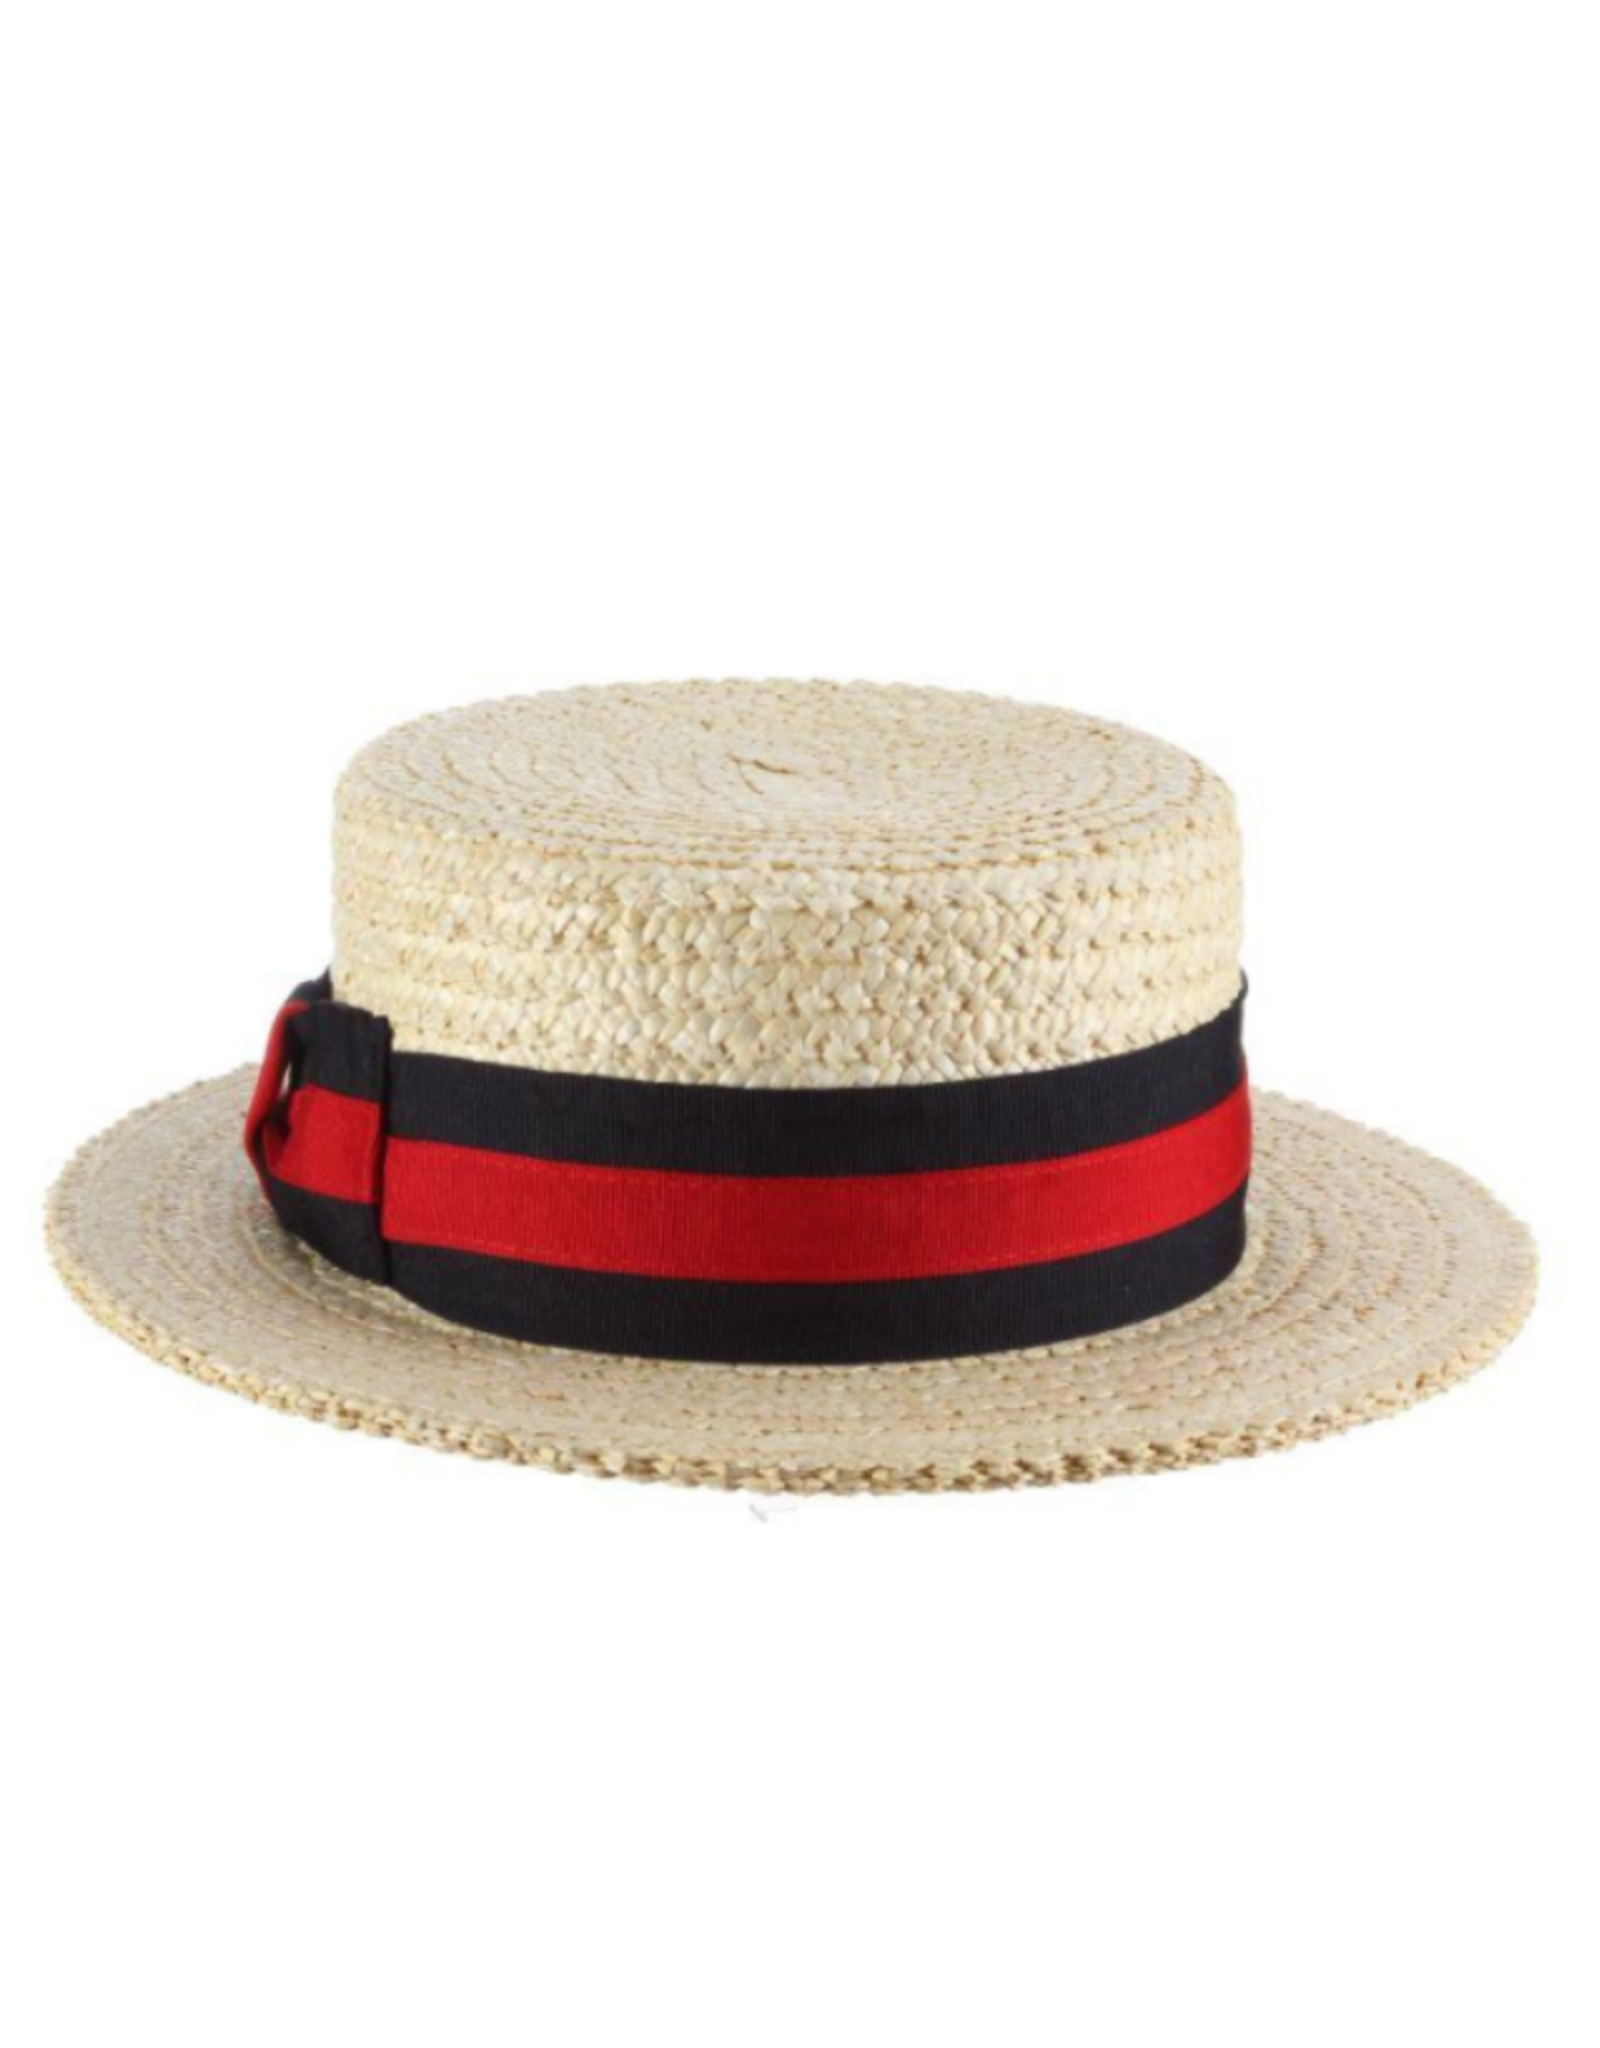 "HAT-BOATER ""GONDOLA"" CLASSIC W/STRIPED BAND"